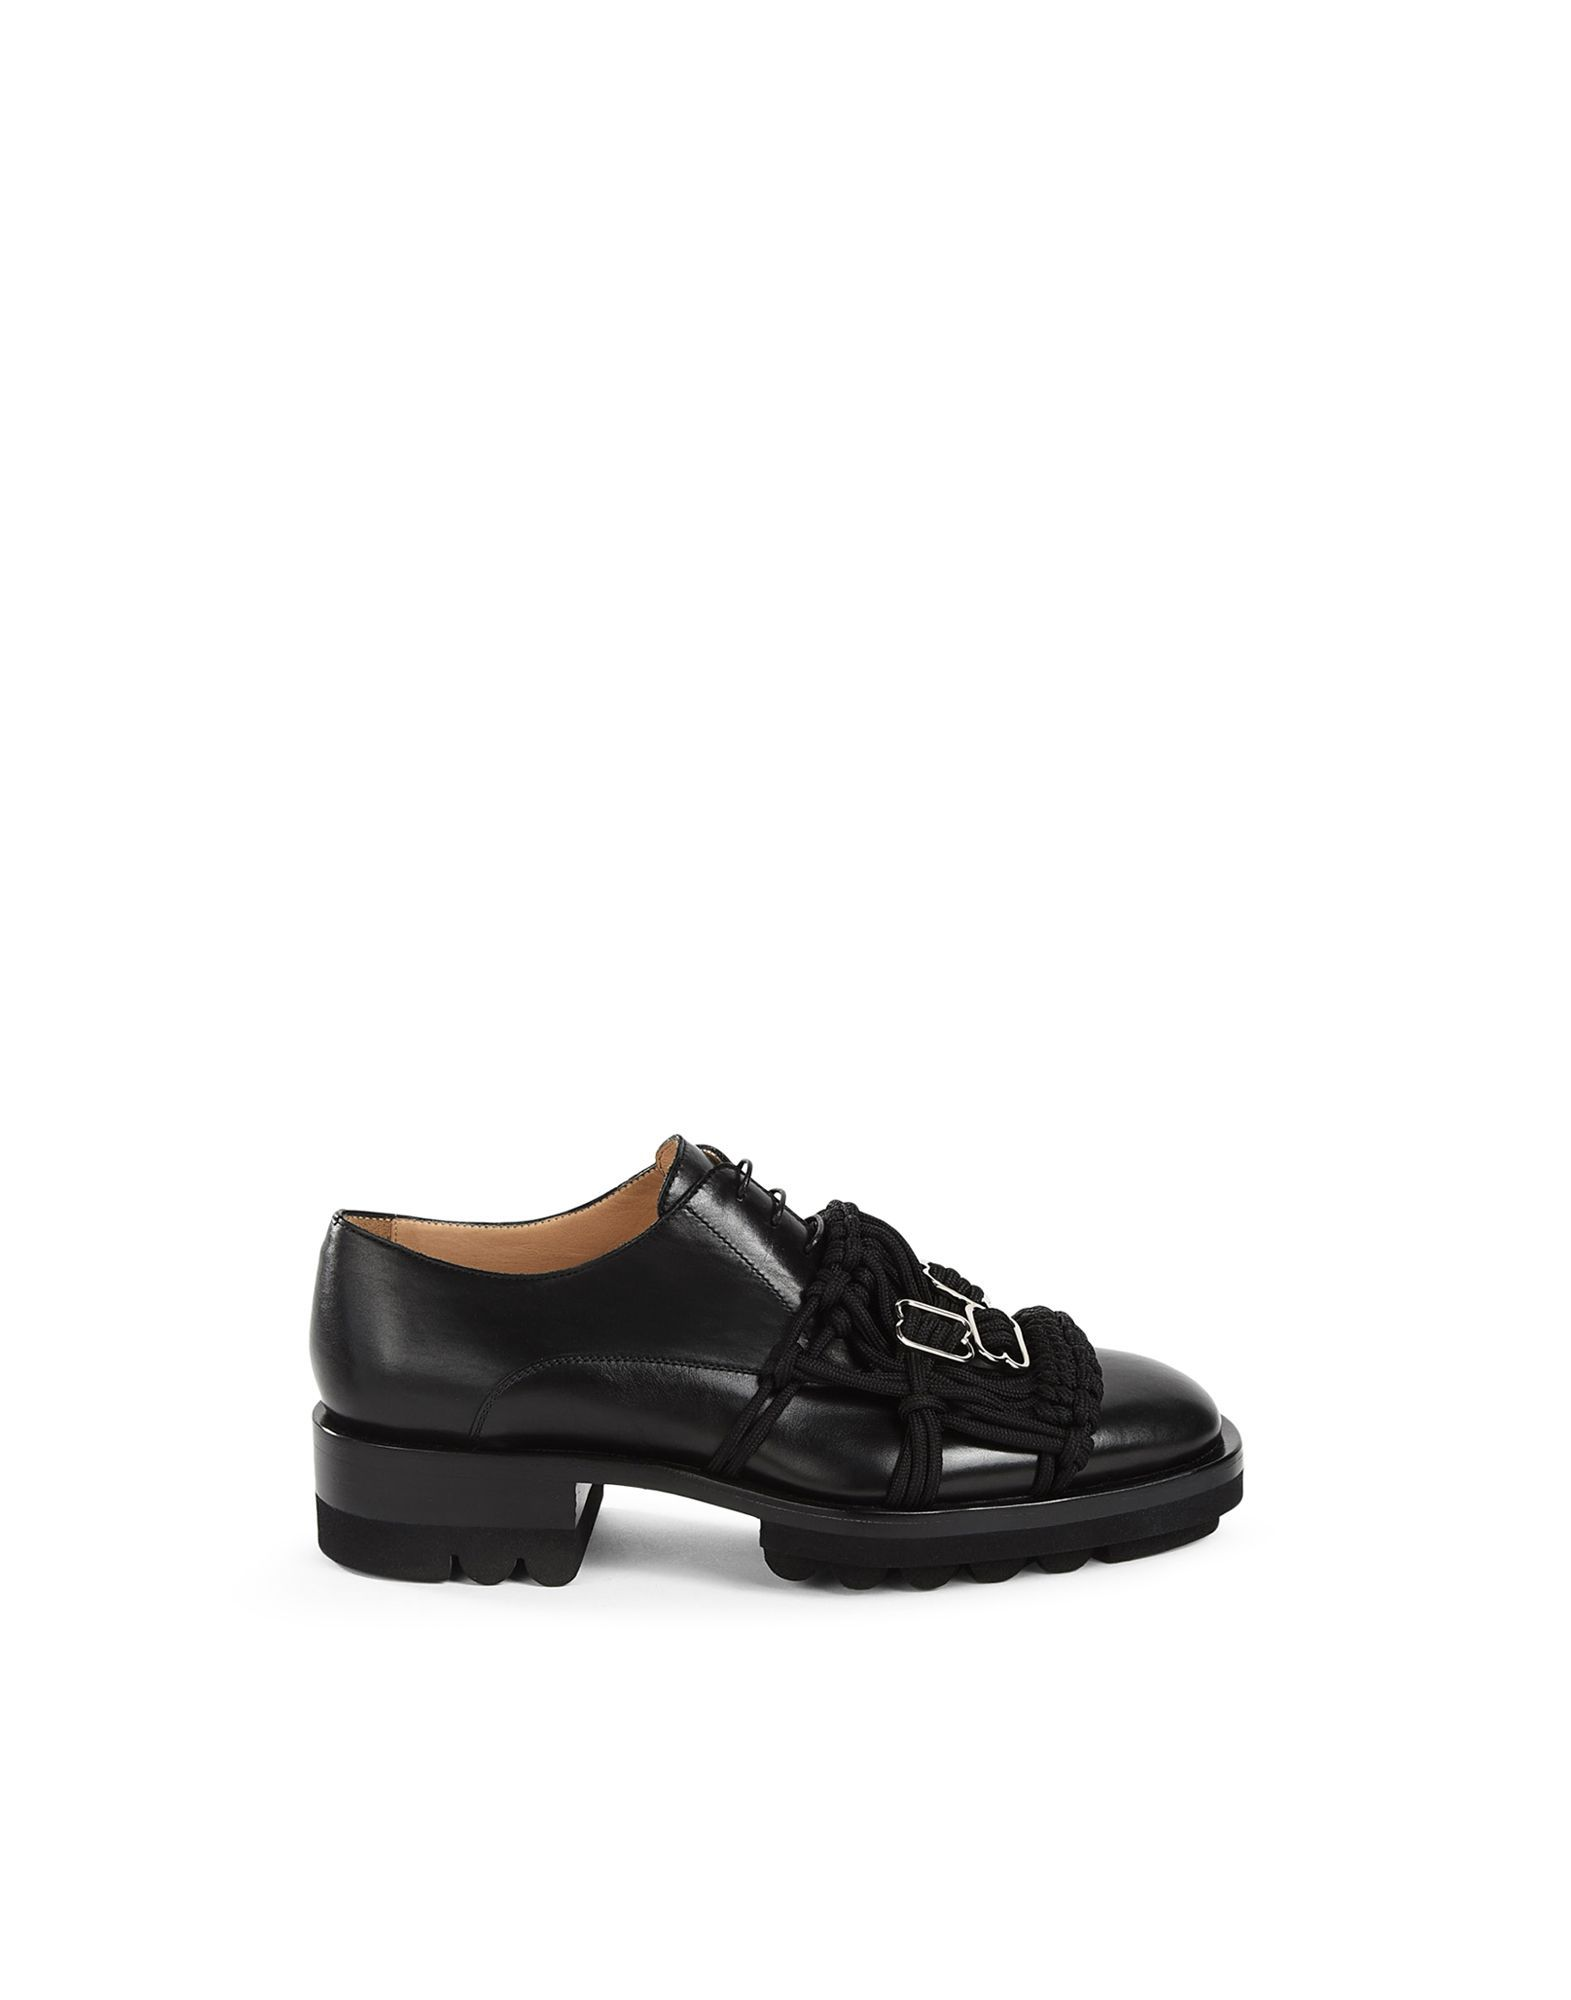 b3e1a27f5 Lace up Men - Shoes Men on Jil Sander Online Store